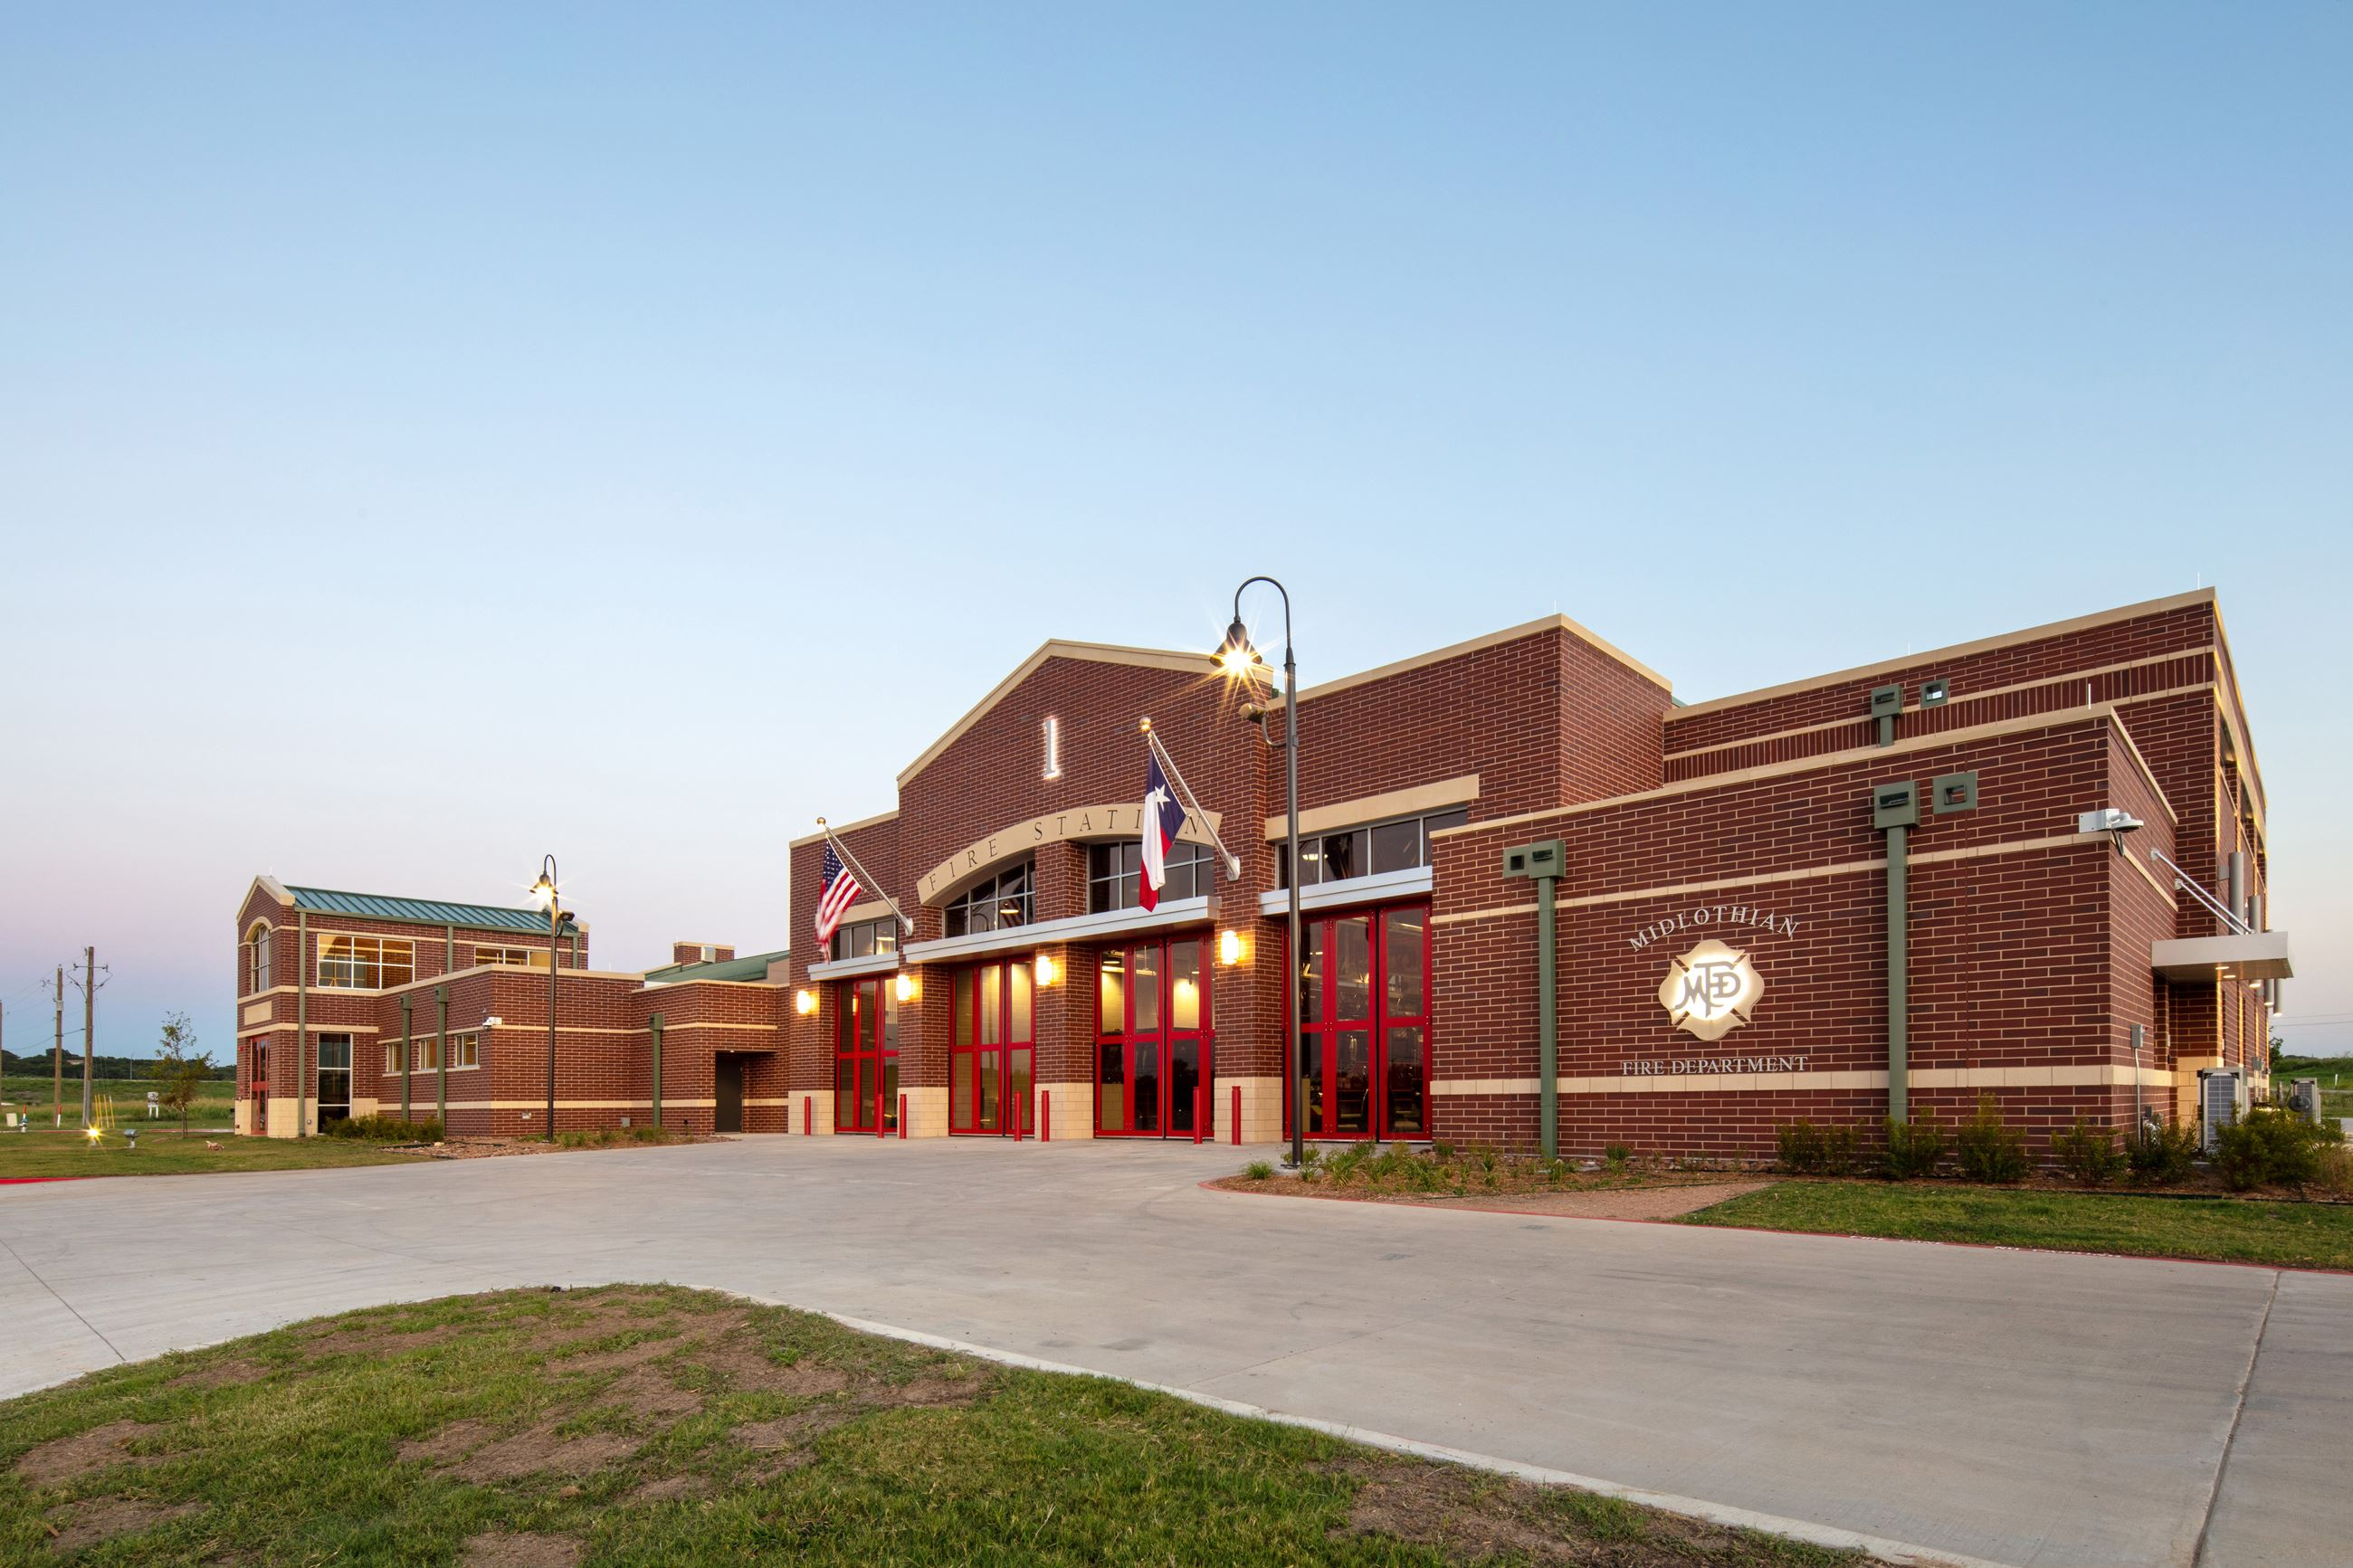 photo of front of Fire Station No. 1